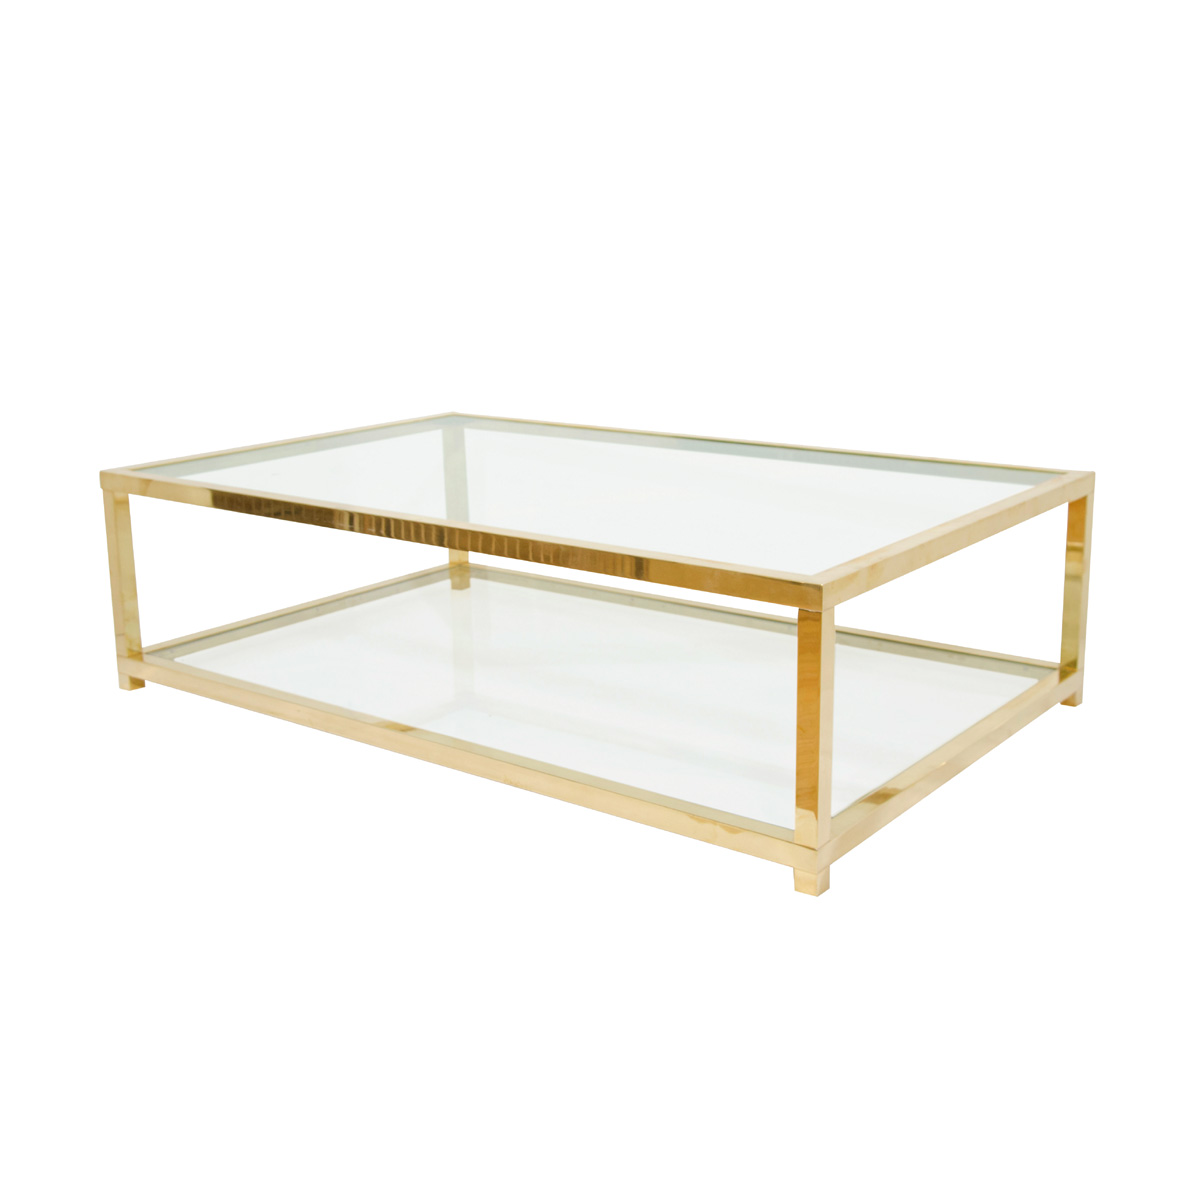 Two-Tier-Glass-Coffee-Table-I-simply-wont-ever-be-able-to-look-at-it-in-the-same-way-again-Best-Professionally-Designed-Good-luck-to-all-those-who-try (Image 7 of 10)